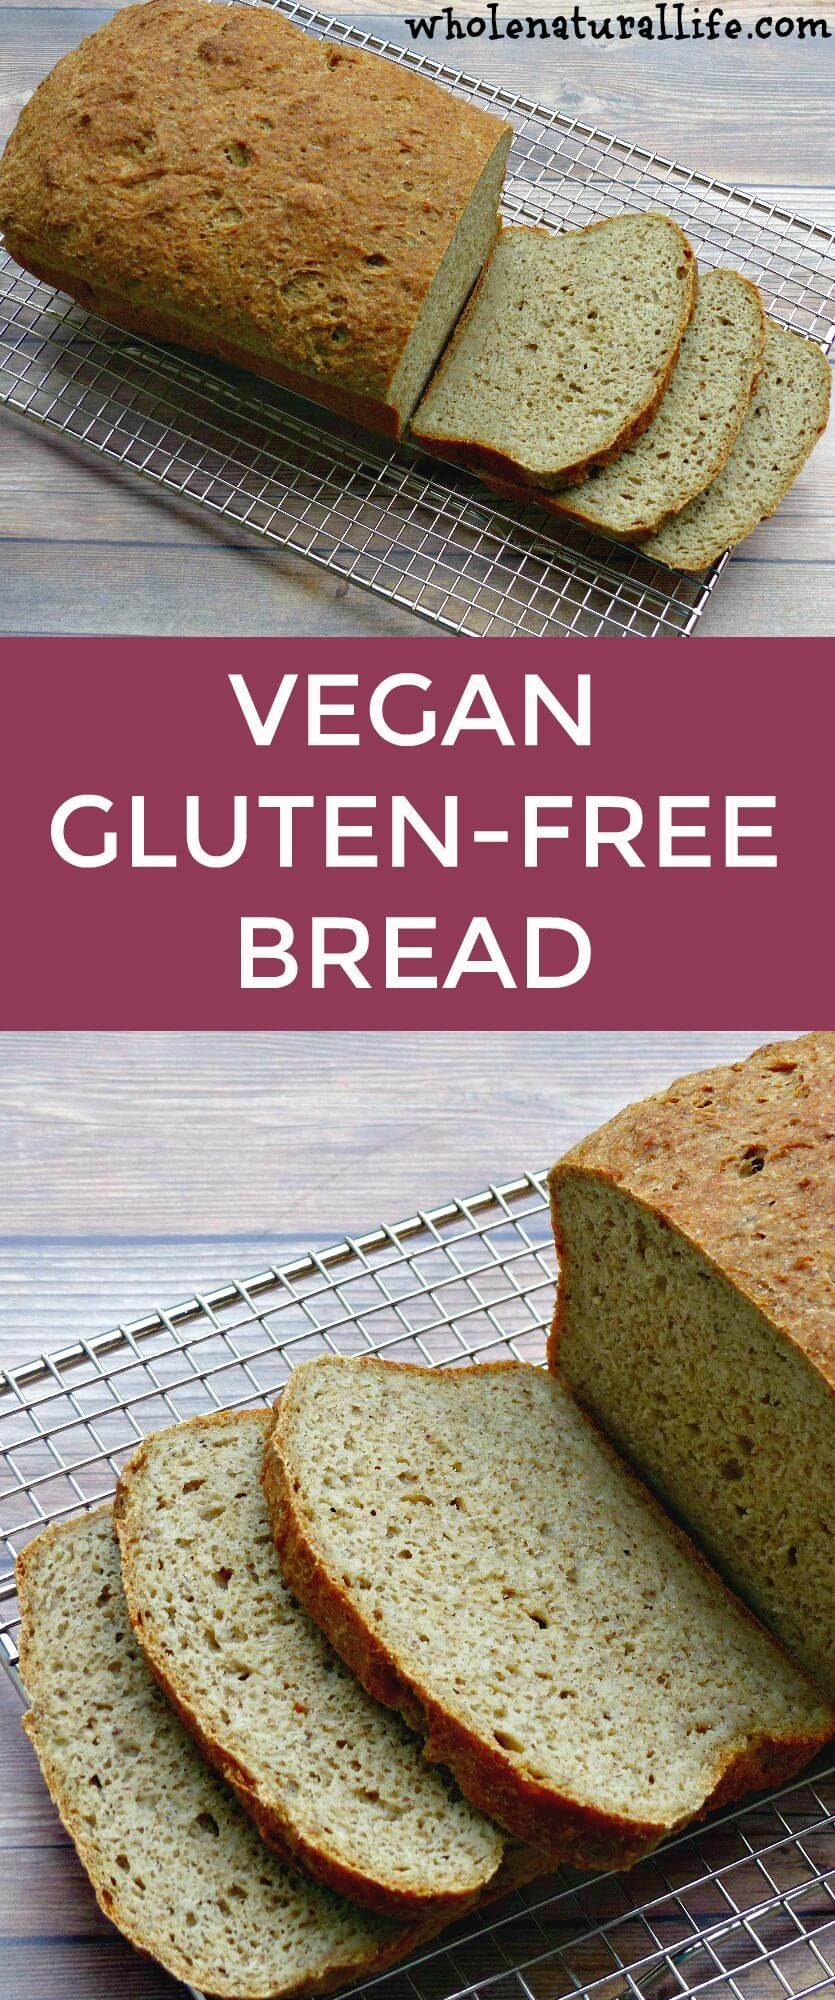 The Ultimate Gluten Free Bread And It S Vegan Too Recipe Gluten Free Vegan Bread Gluten Free Bread Gluten Free Recipes Bread